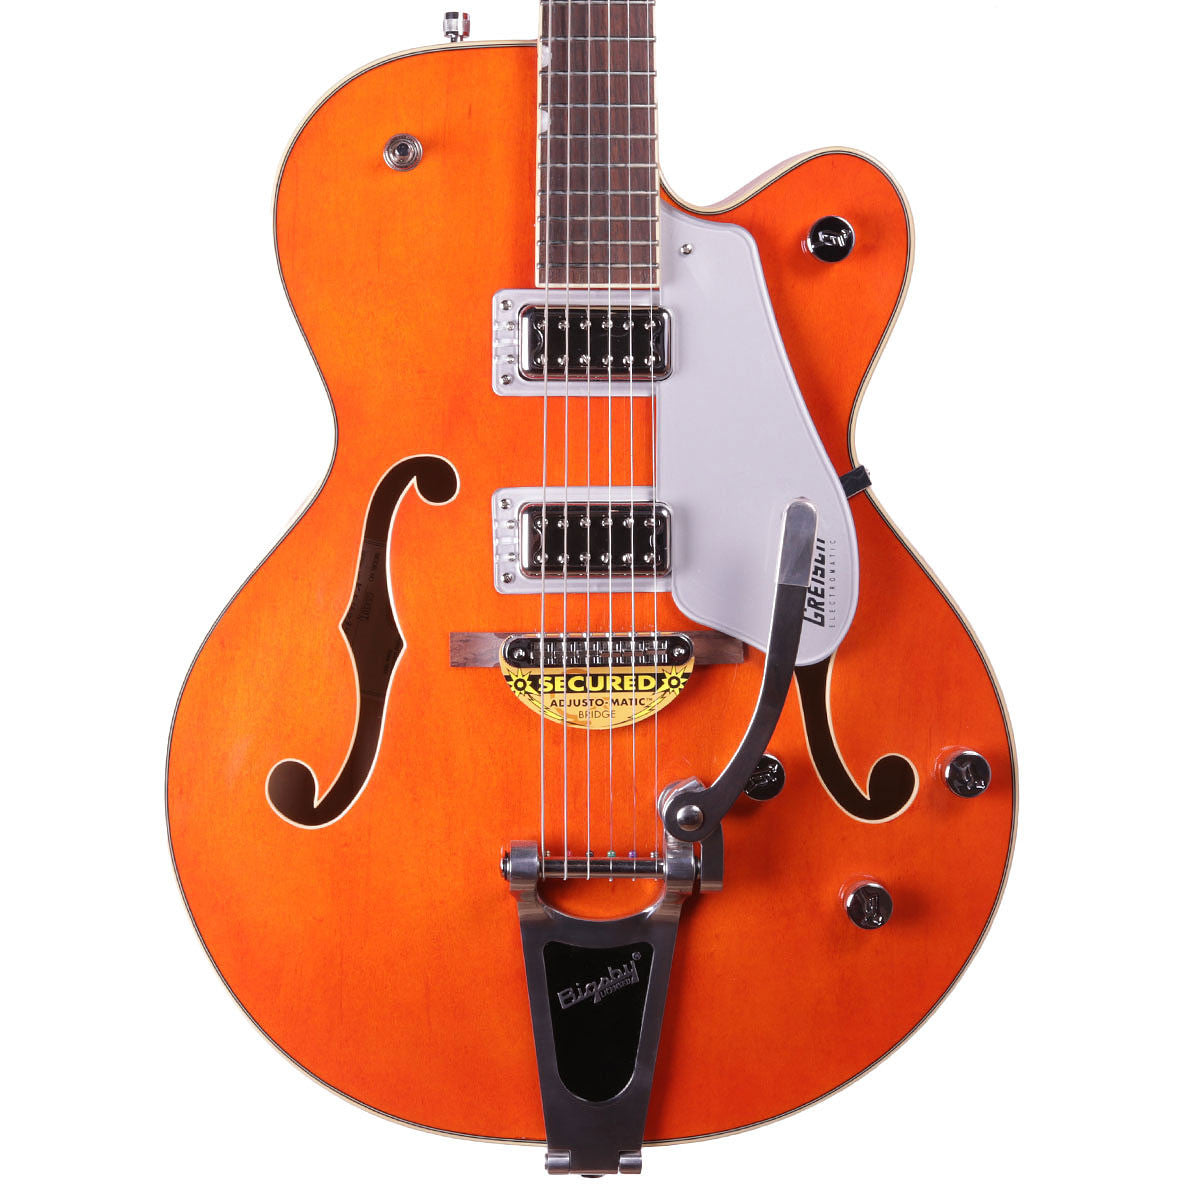 Gretsch G5420T 2016 Electromatic Hollowbody w/Bigsby - Orange - Vintage Guitar Boutique - 1